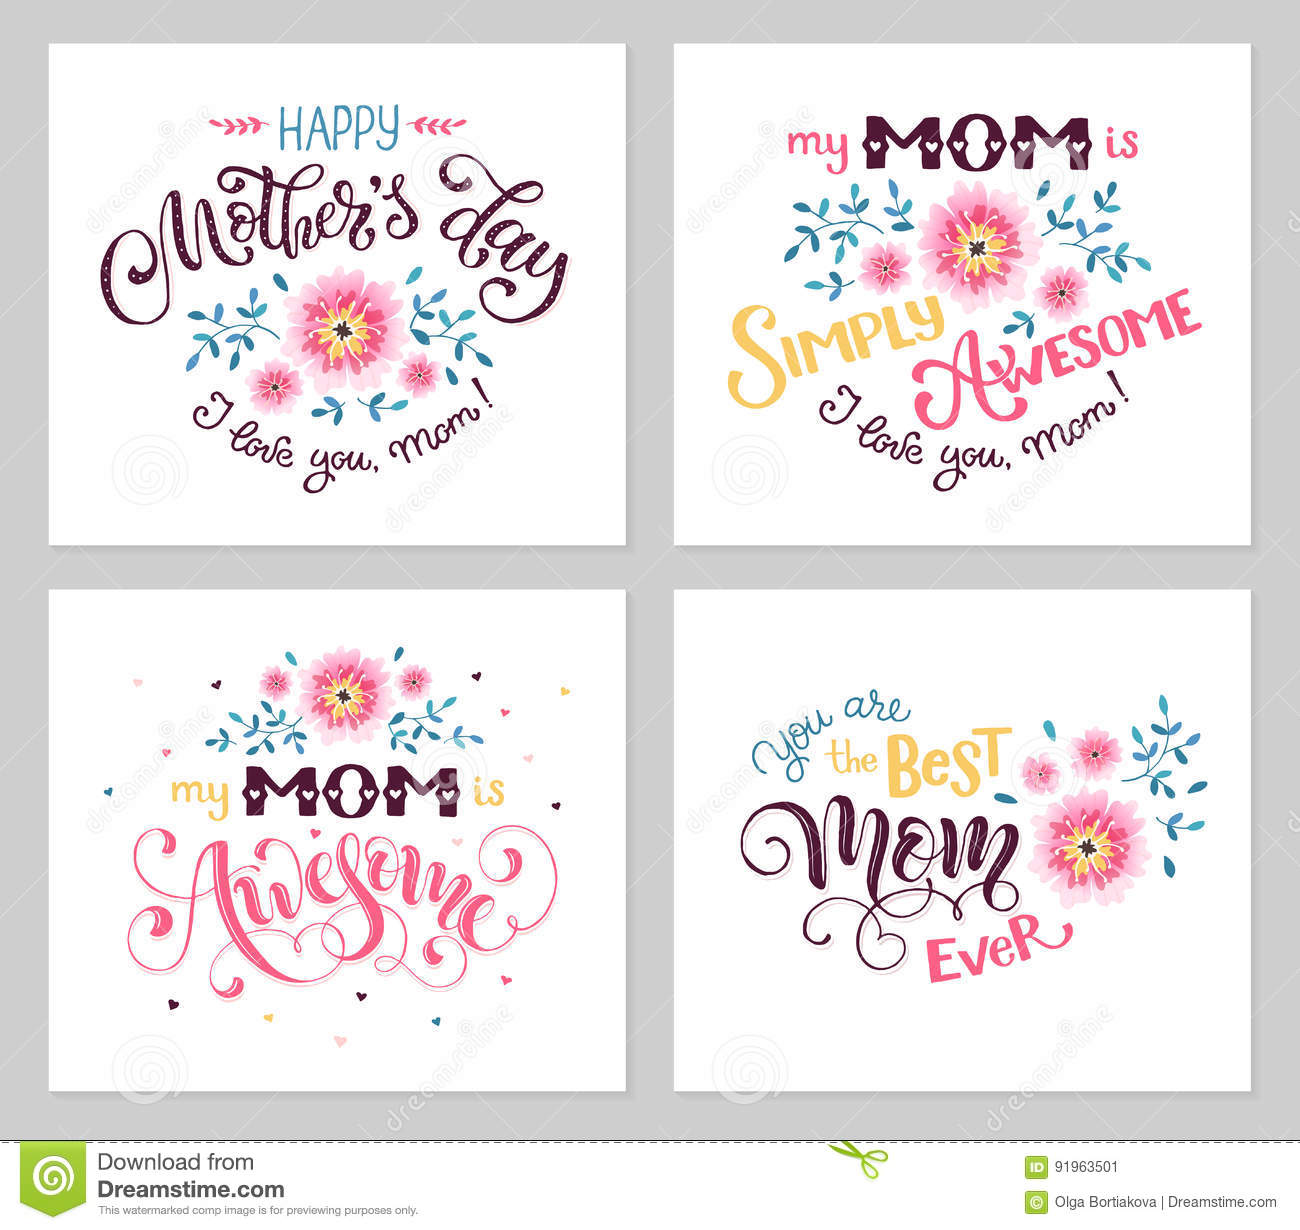 Mothers day card collection stock vector illustration of happy mother day greeting card set my mom is awesome best mom ever hand drawn calligraphic phrases with flowers isolated on white background m4hsunfo